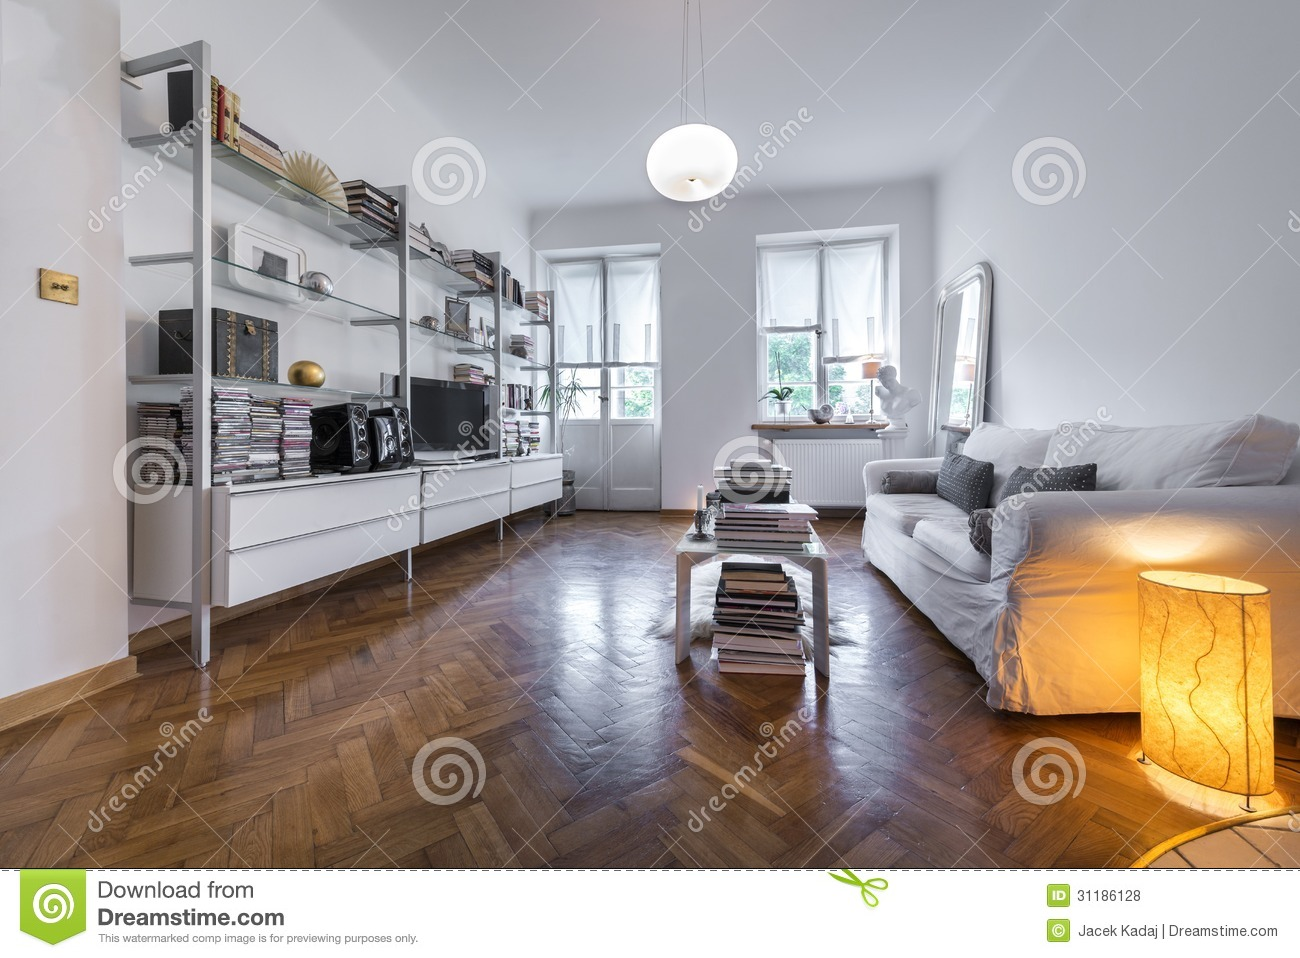 Royalty Free Stock Photo Classic Design Interior